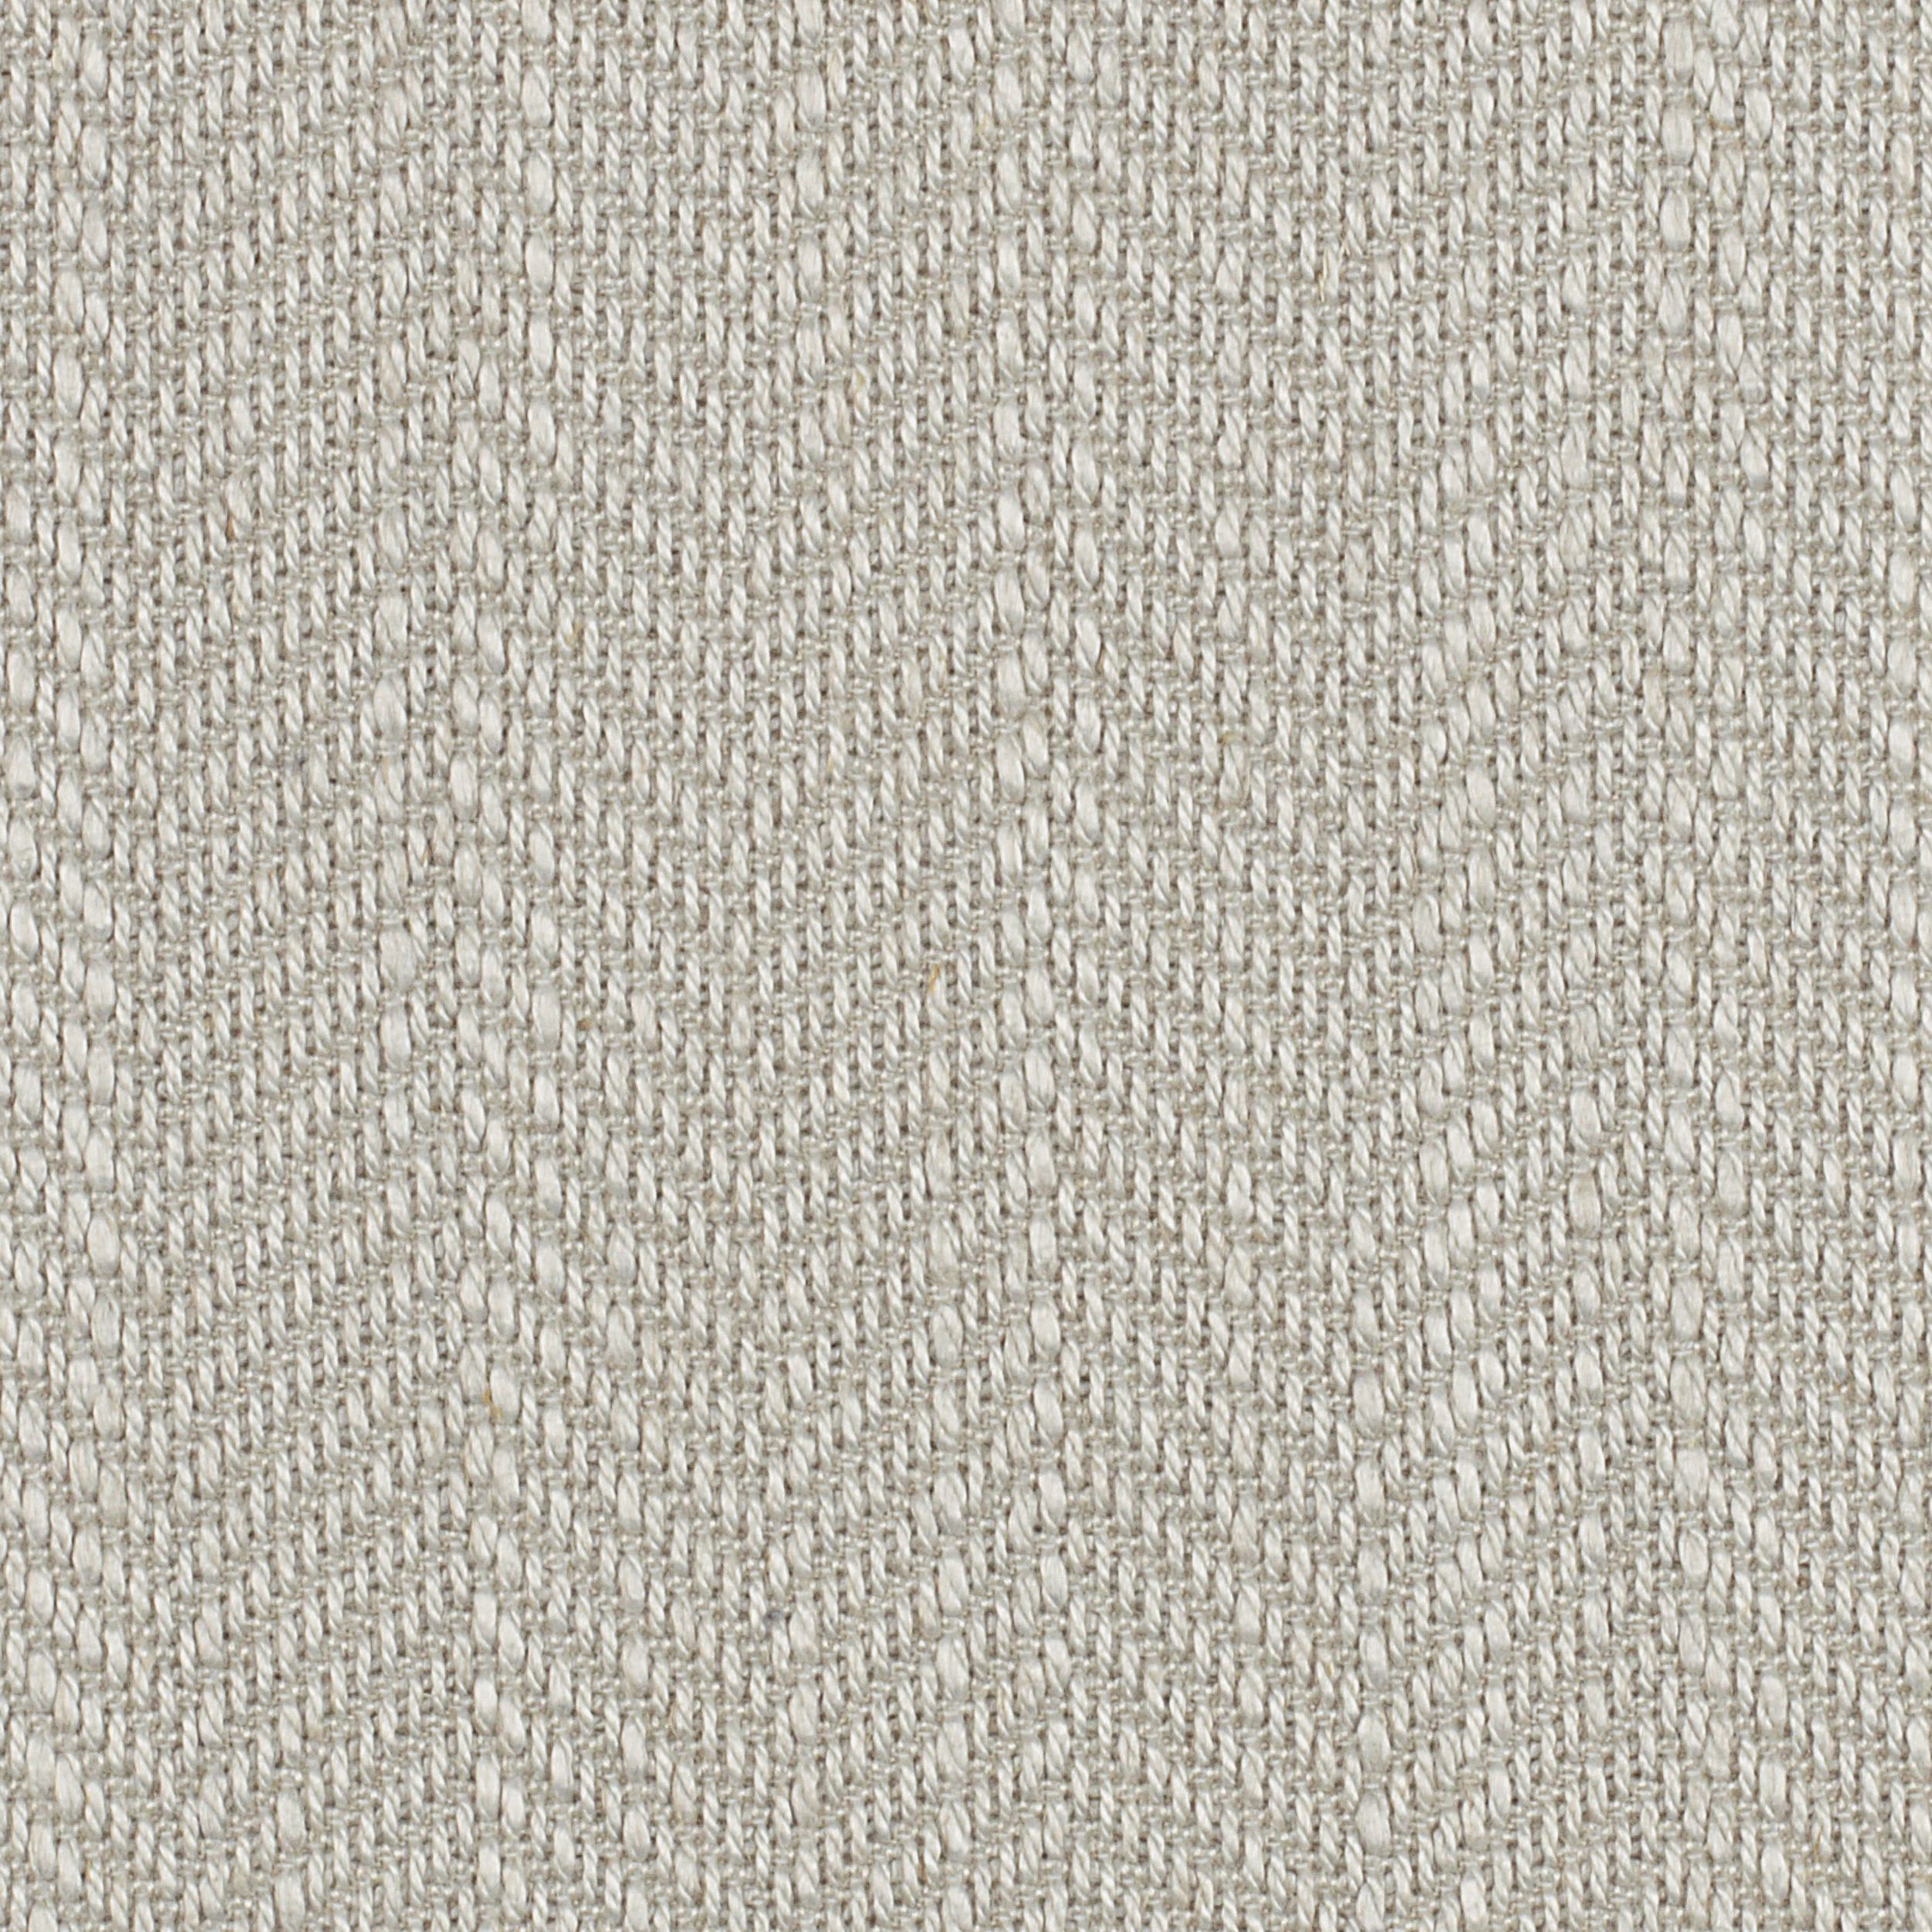 7 A M Enfant Blanket 212 Evolution Grey Sofa Fabric Texture Upholstery Fabric Fabric Textures